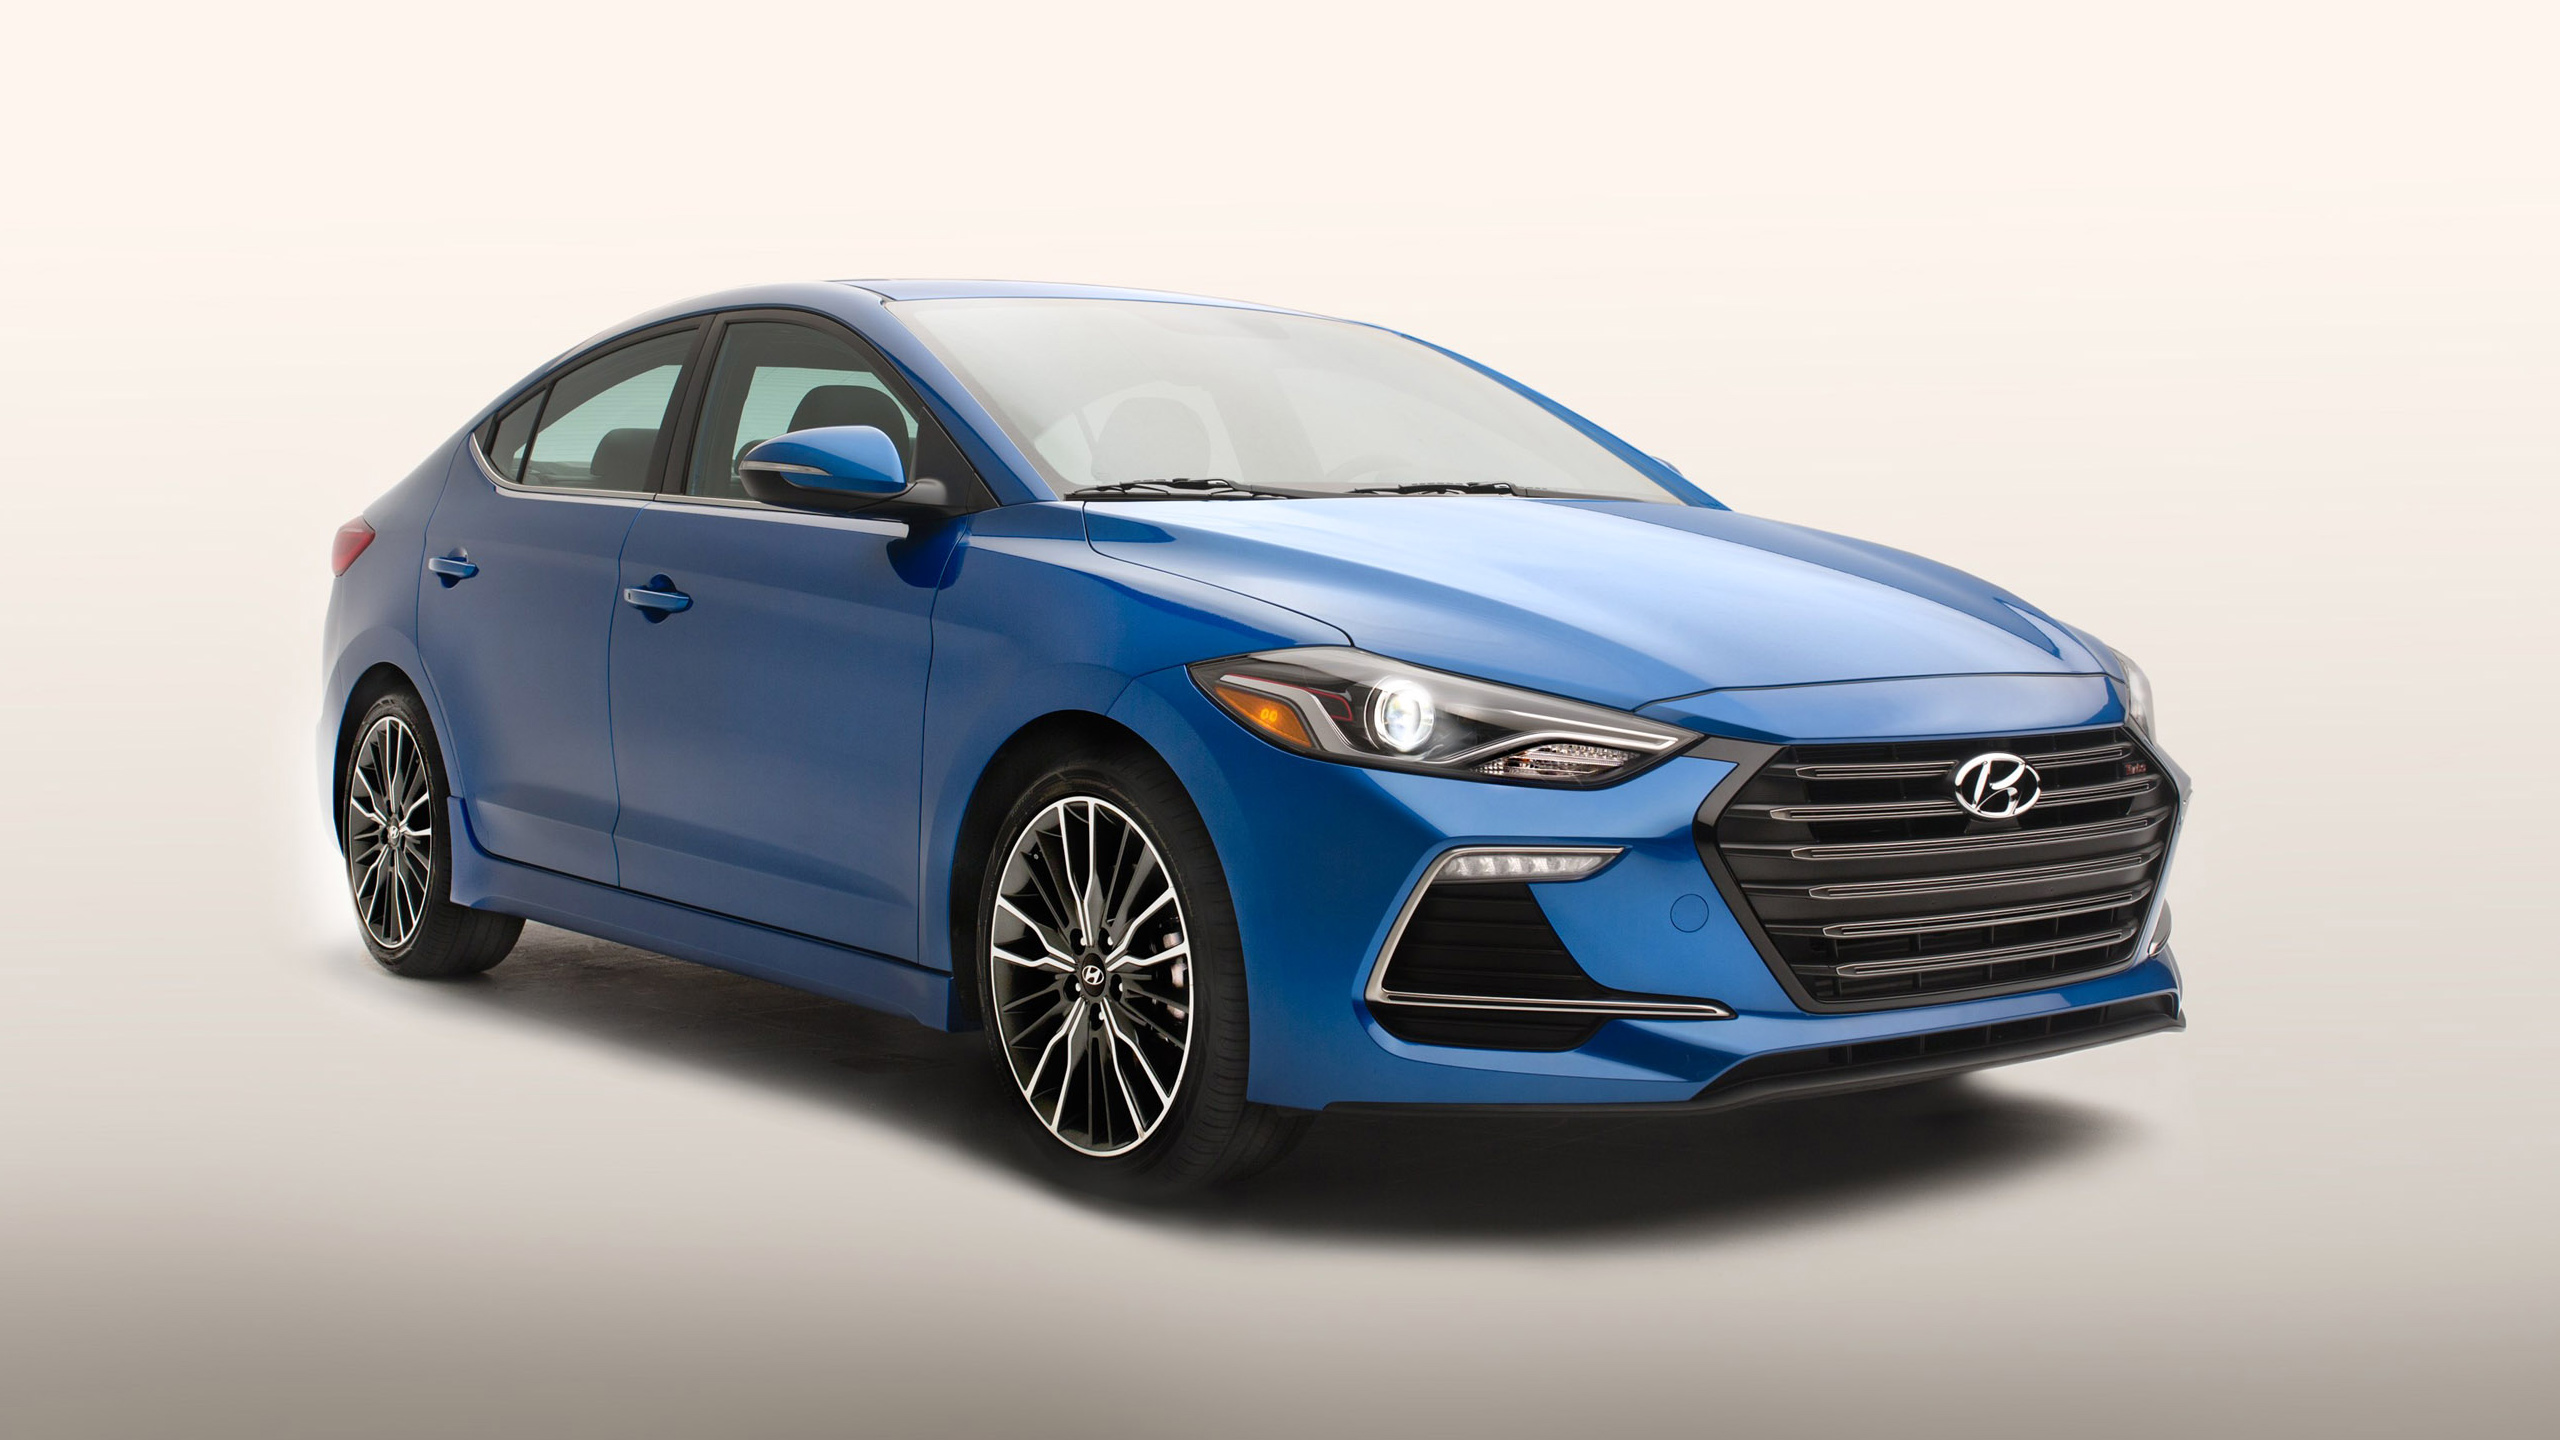 2017 hyundai elantra sport wallpaper hd car wallpapers. Black Bedroom Furniture Sets. Home Design Ideas